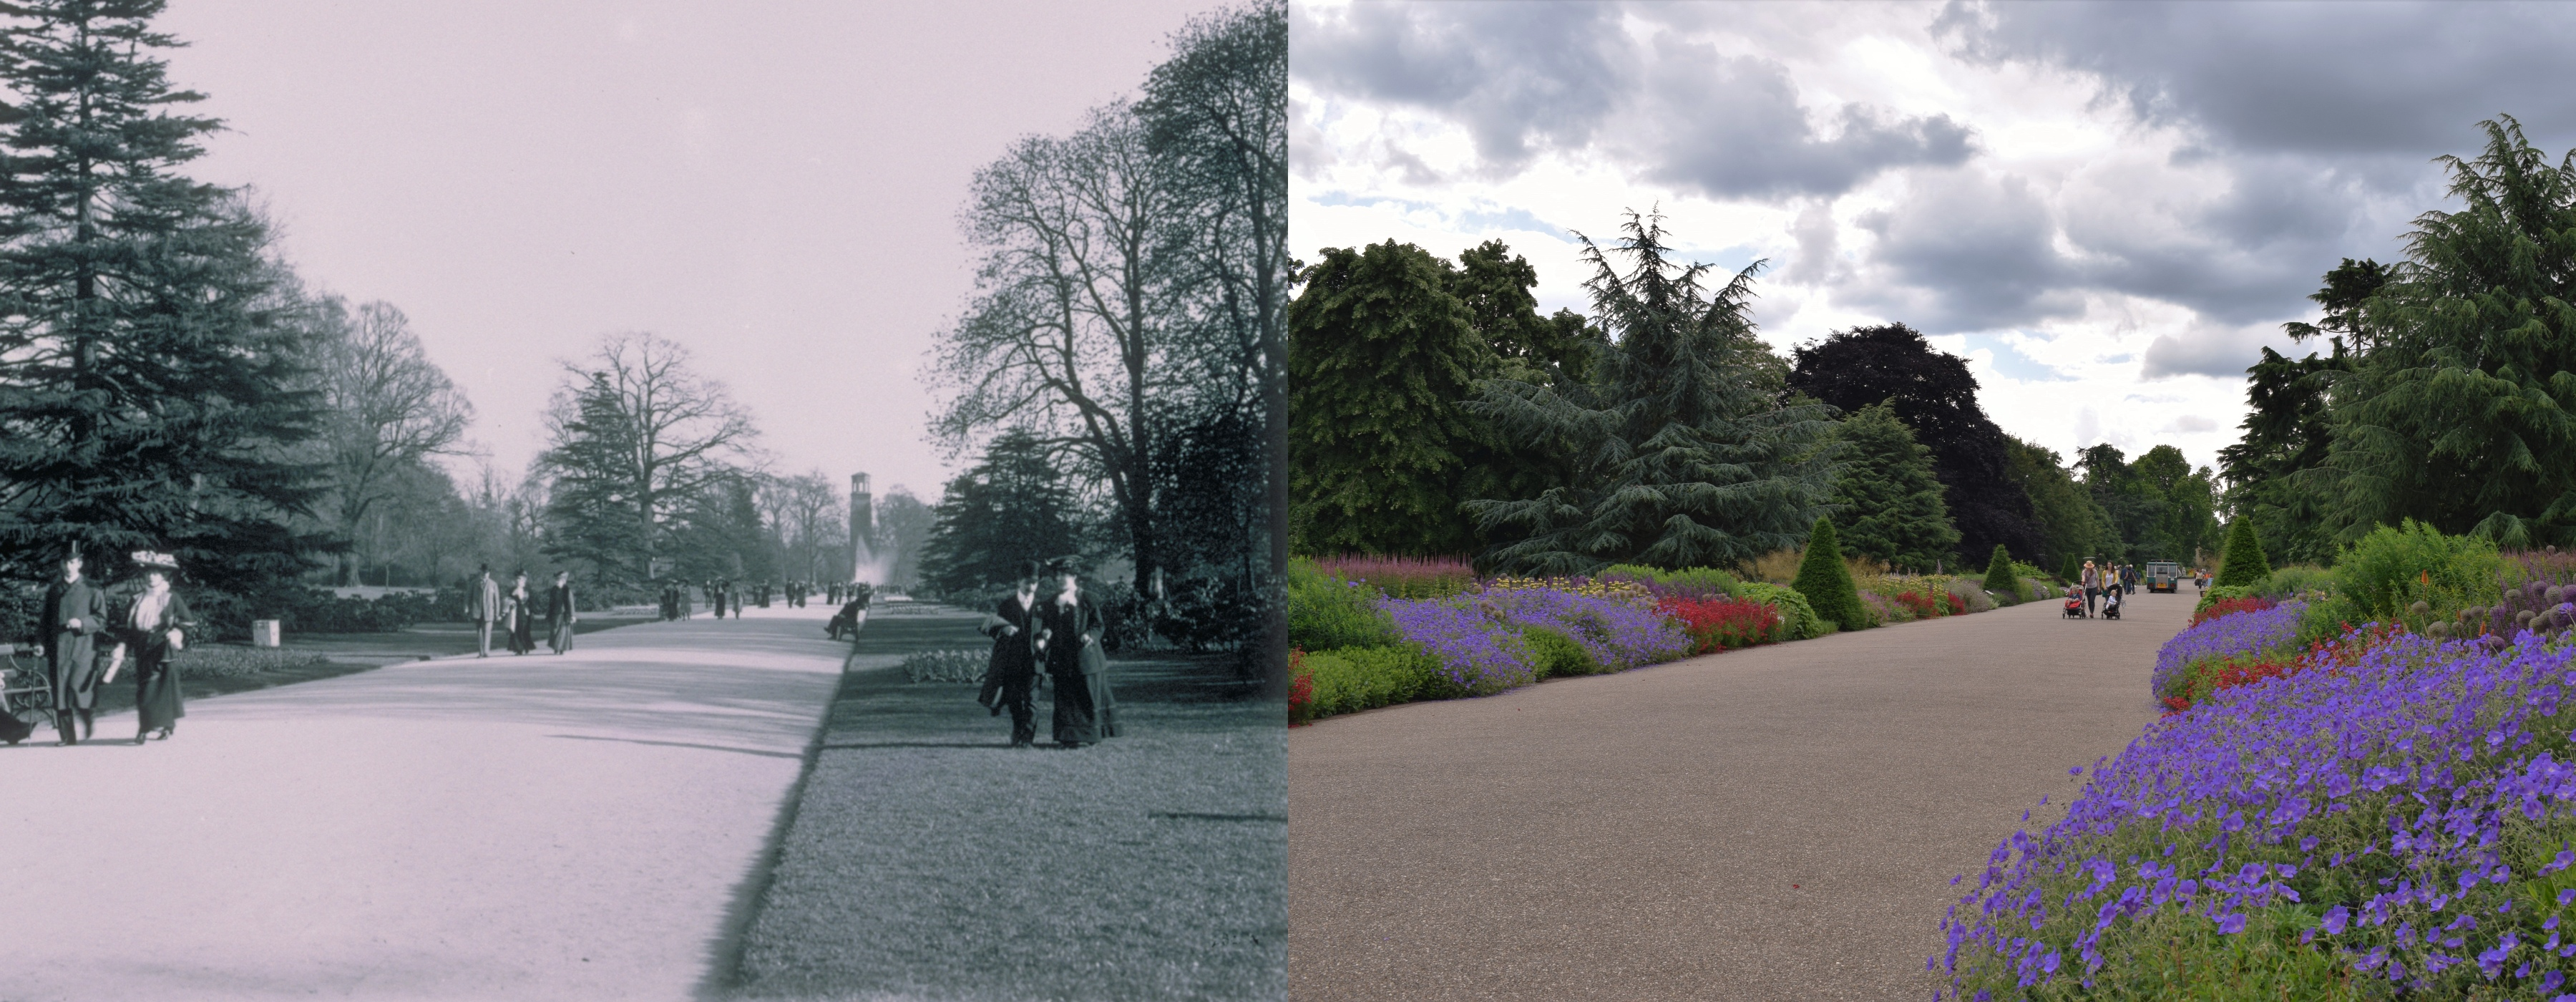 Great Broad Walk then and now